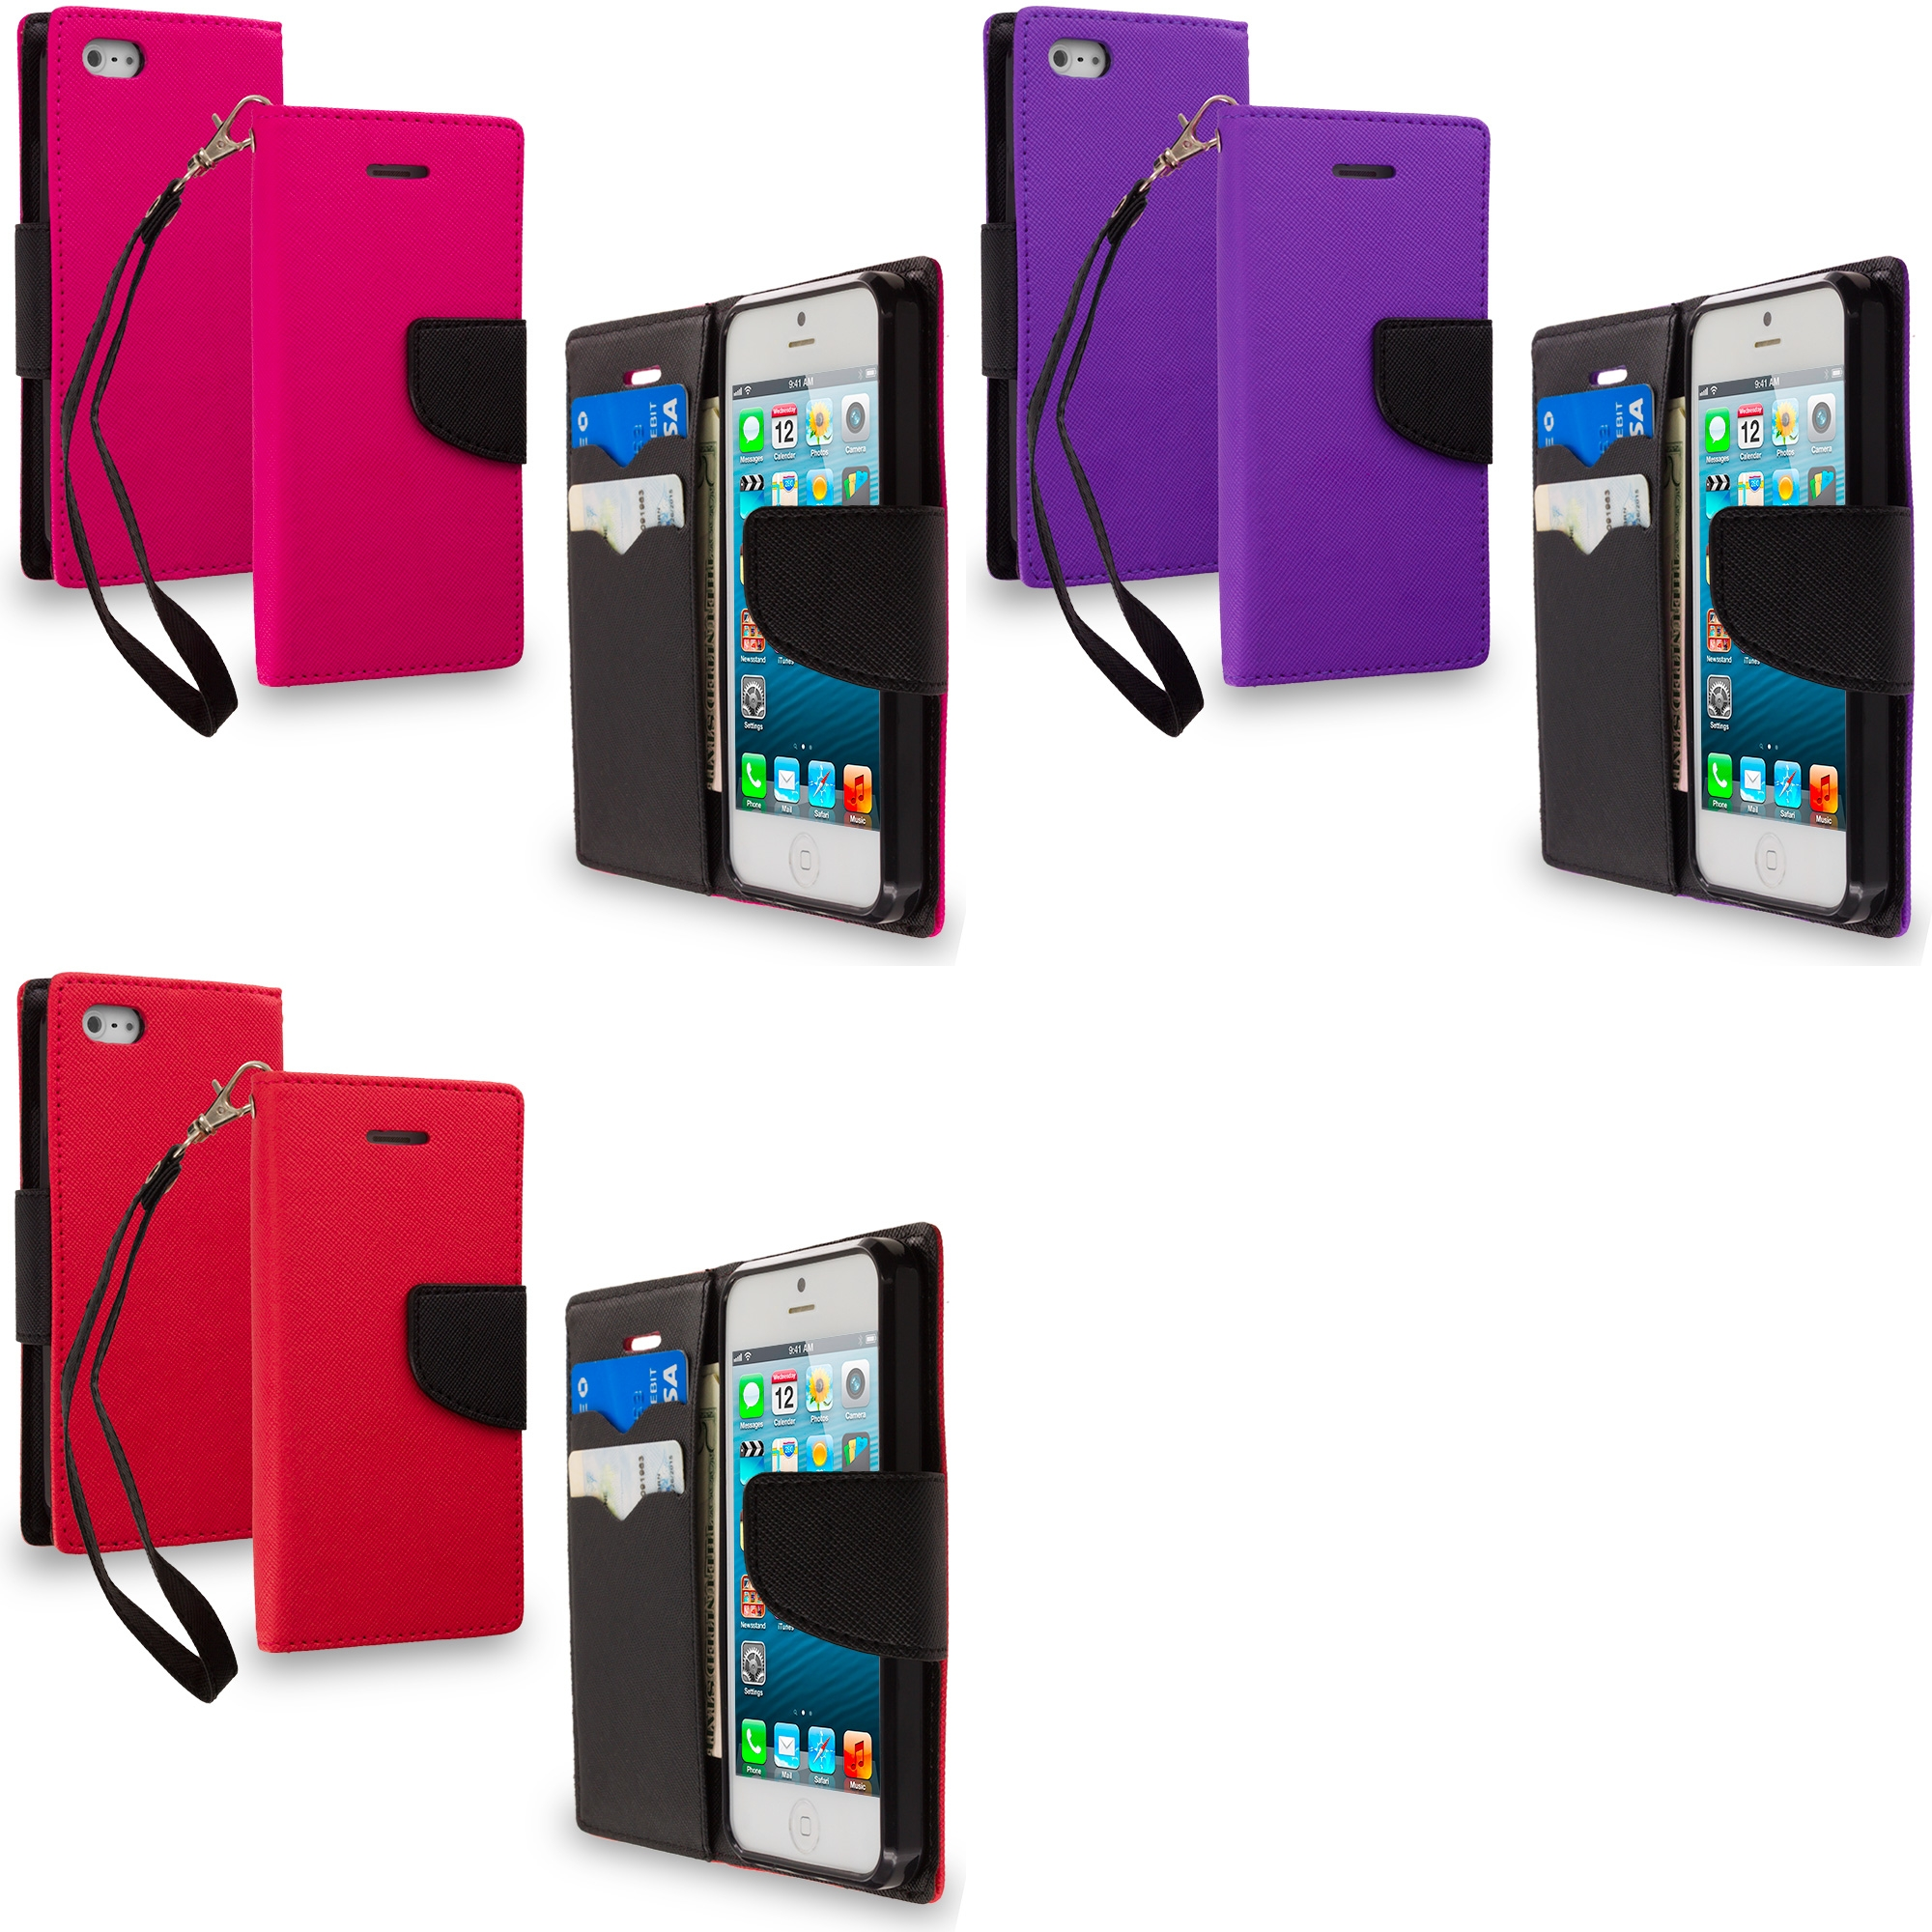 Apple iPhone 5/5S/SE Combo Pack : Hot Pink / Black Leather Flip Wallet Pouch TPU Case Cover with ID Card Slots